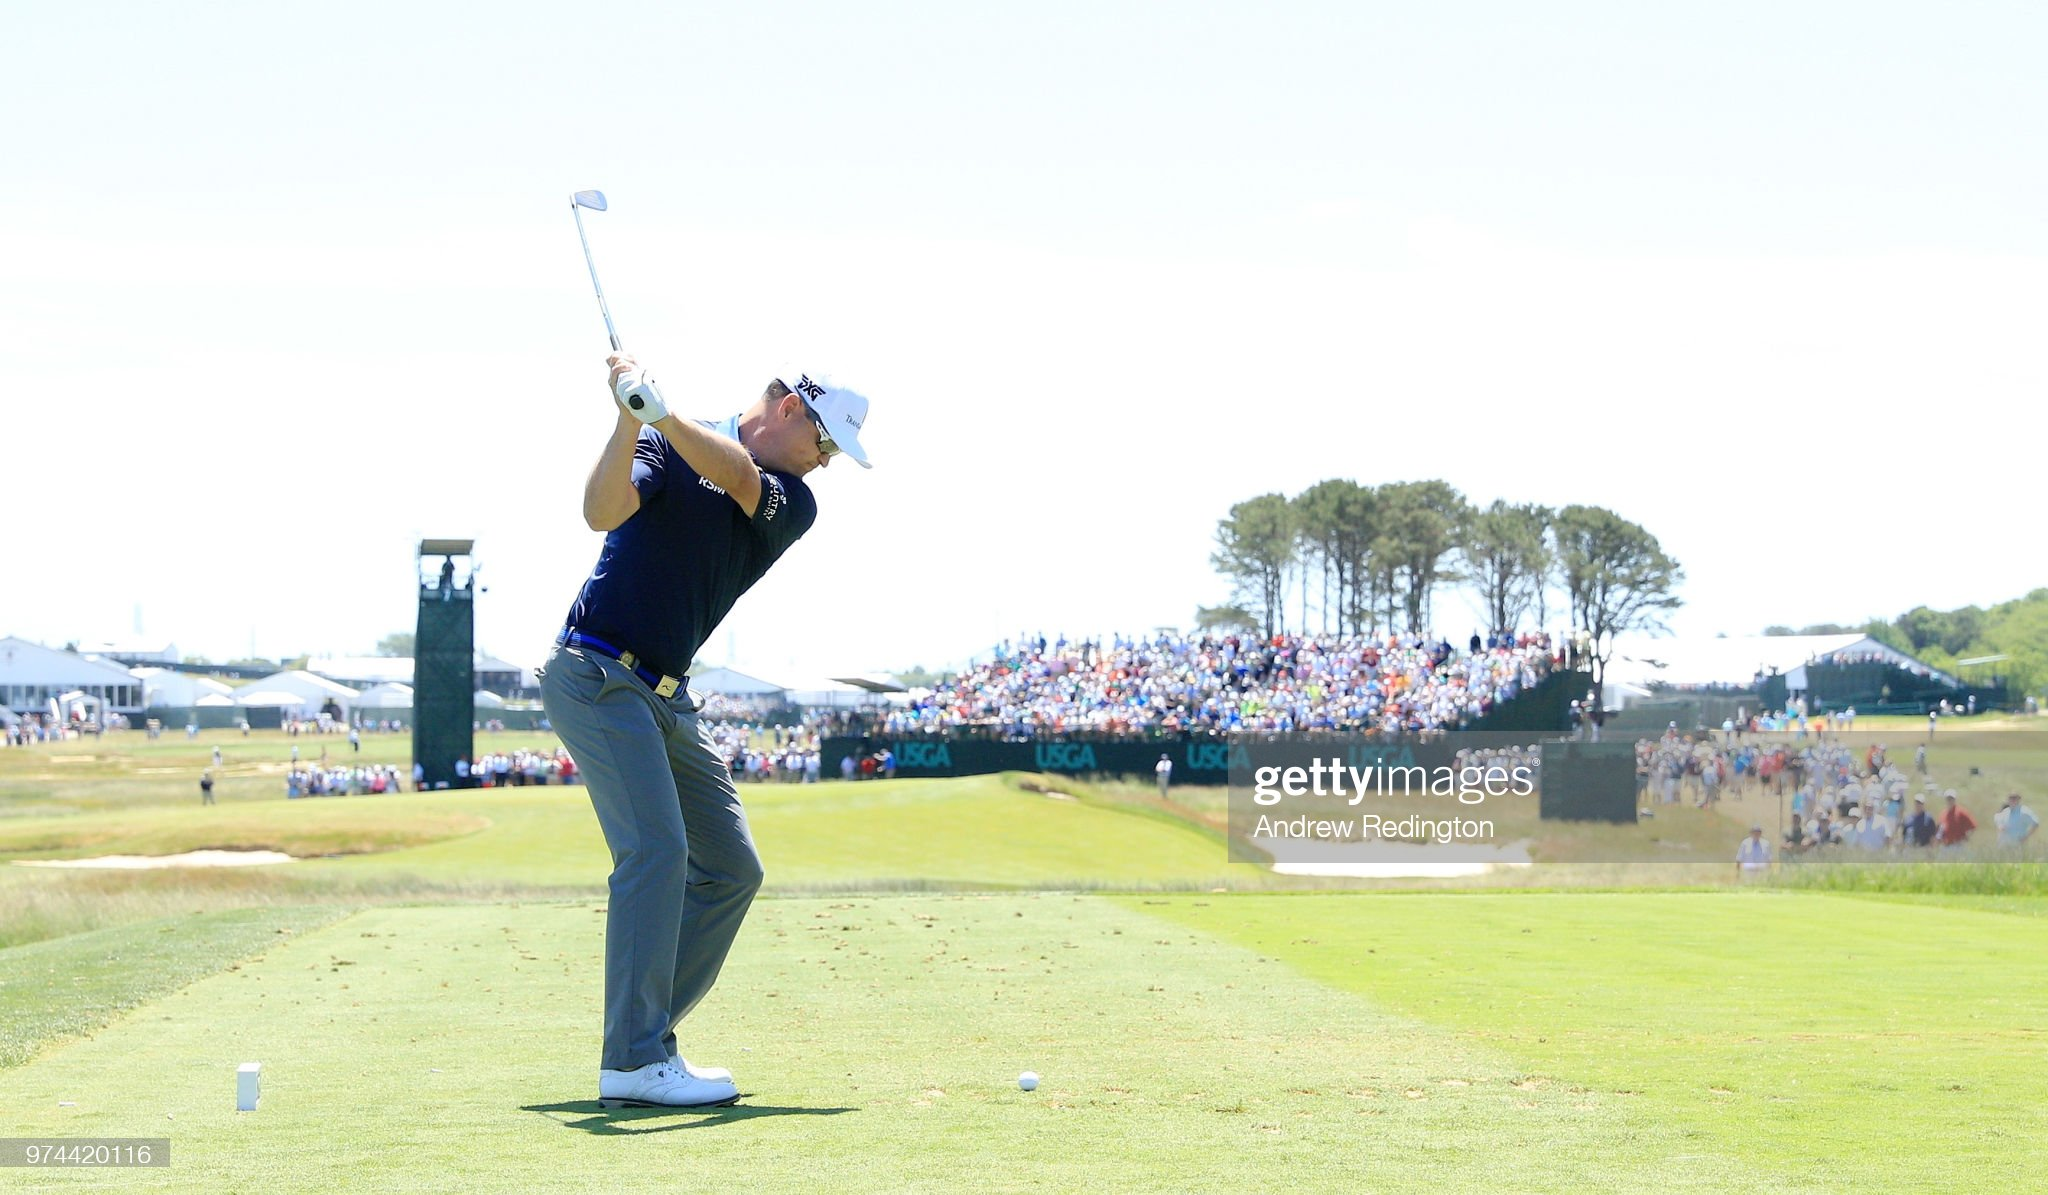 https://media.gettyimages.com/photos/zach-johnson-of-the-united-states-plays-his-shot-from-the-seventh-tee-picture-id974420116?s=2048x2048